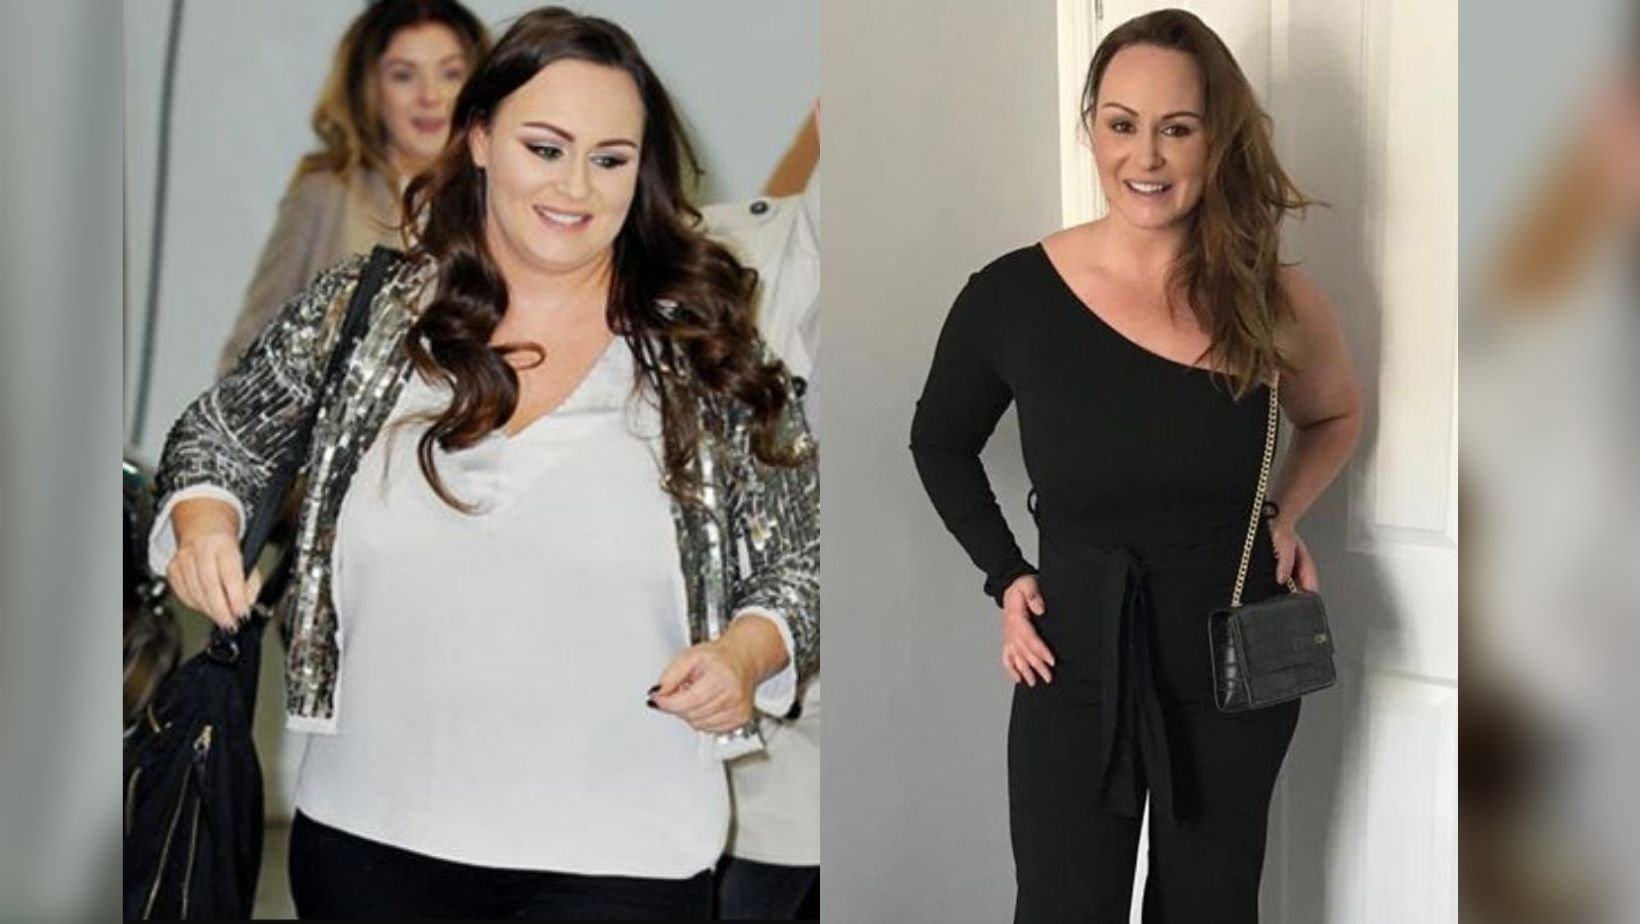 small joys thumbnail 2 3.jpg?resize=1200,630 - Chanelle Hayes Shows Off INCREDIBLE Weight Loss Transformation After Quitting Years Of Unhealthy Lifestyle